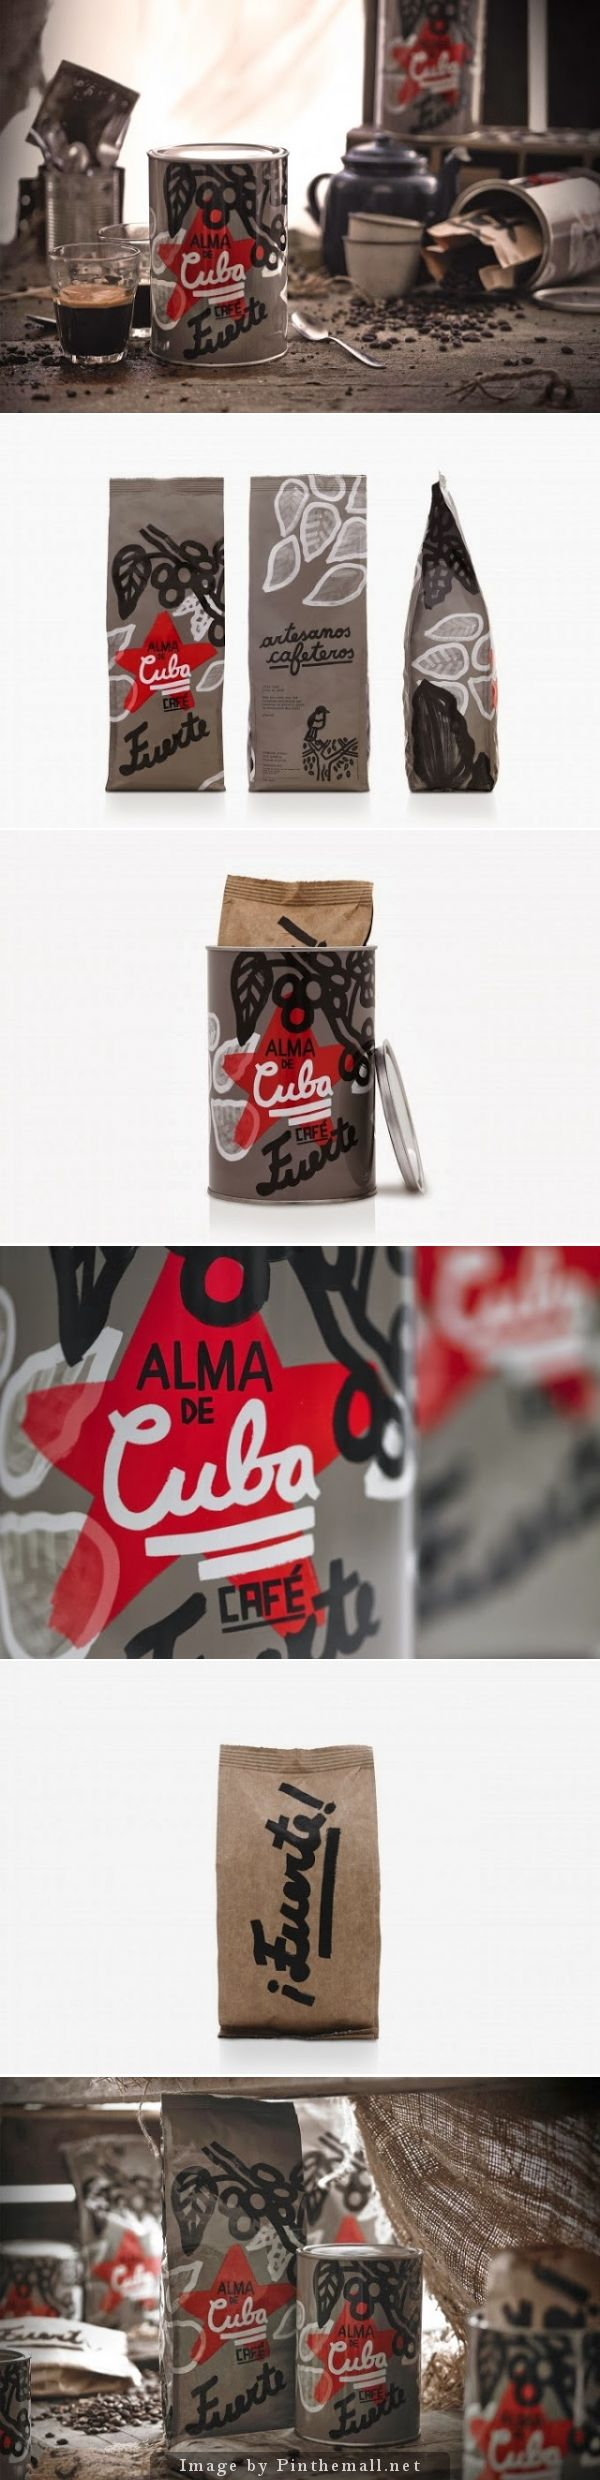 Unique Packaging Design on the Internet, Alma de Cuba #packaging #packagingdesign #design